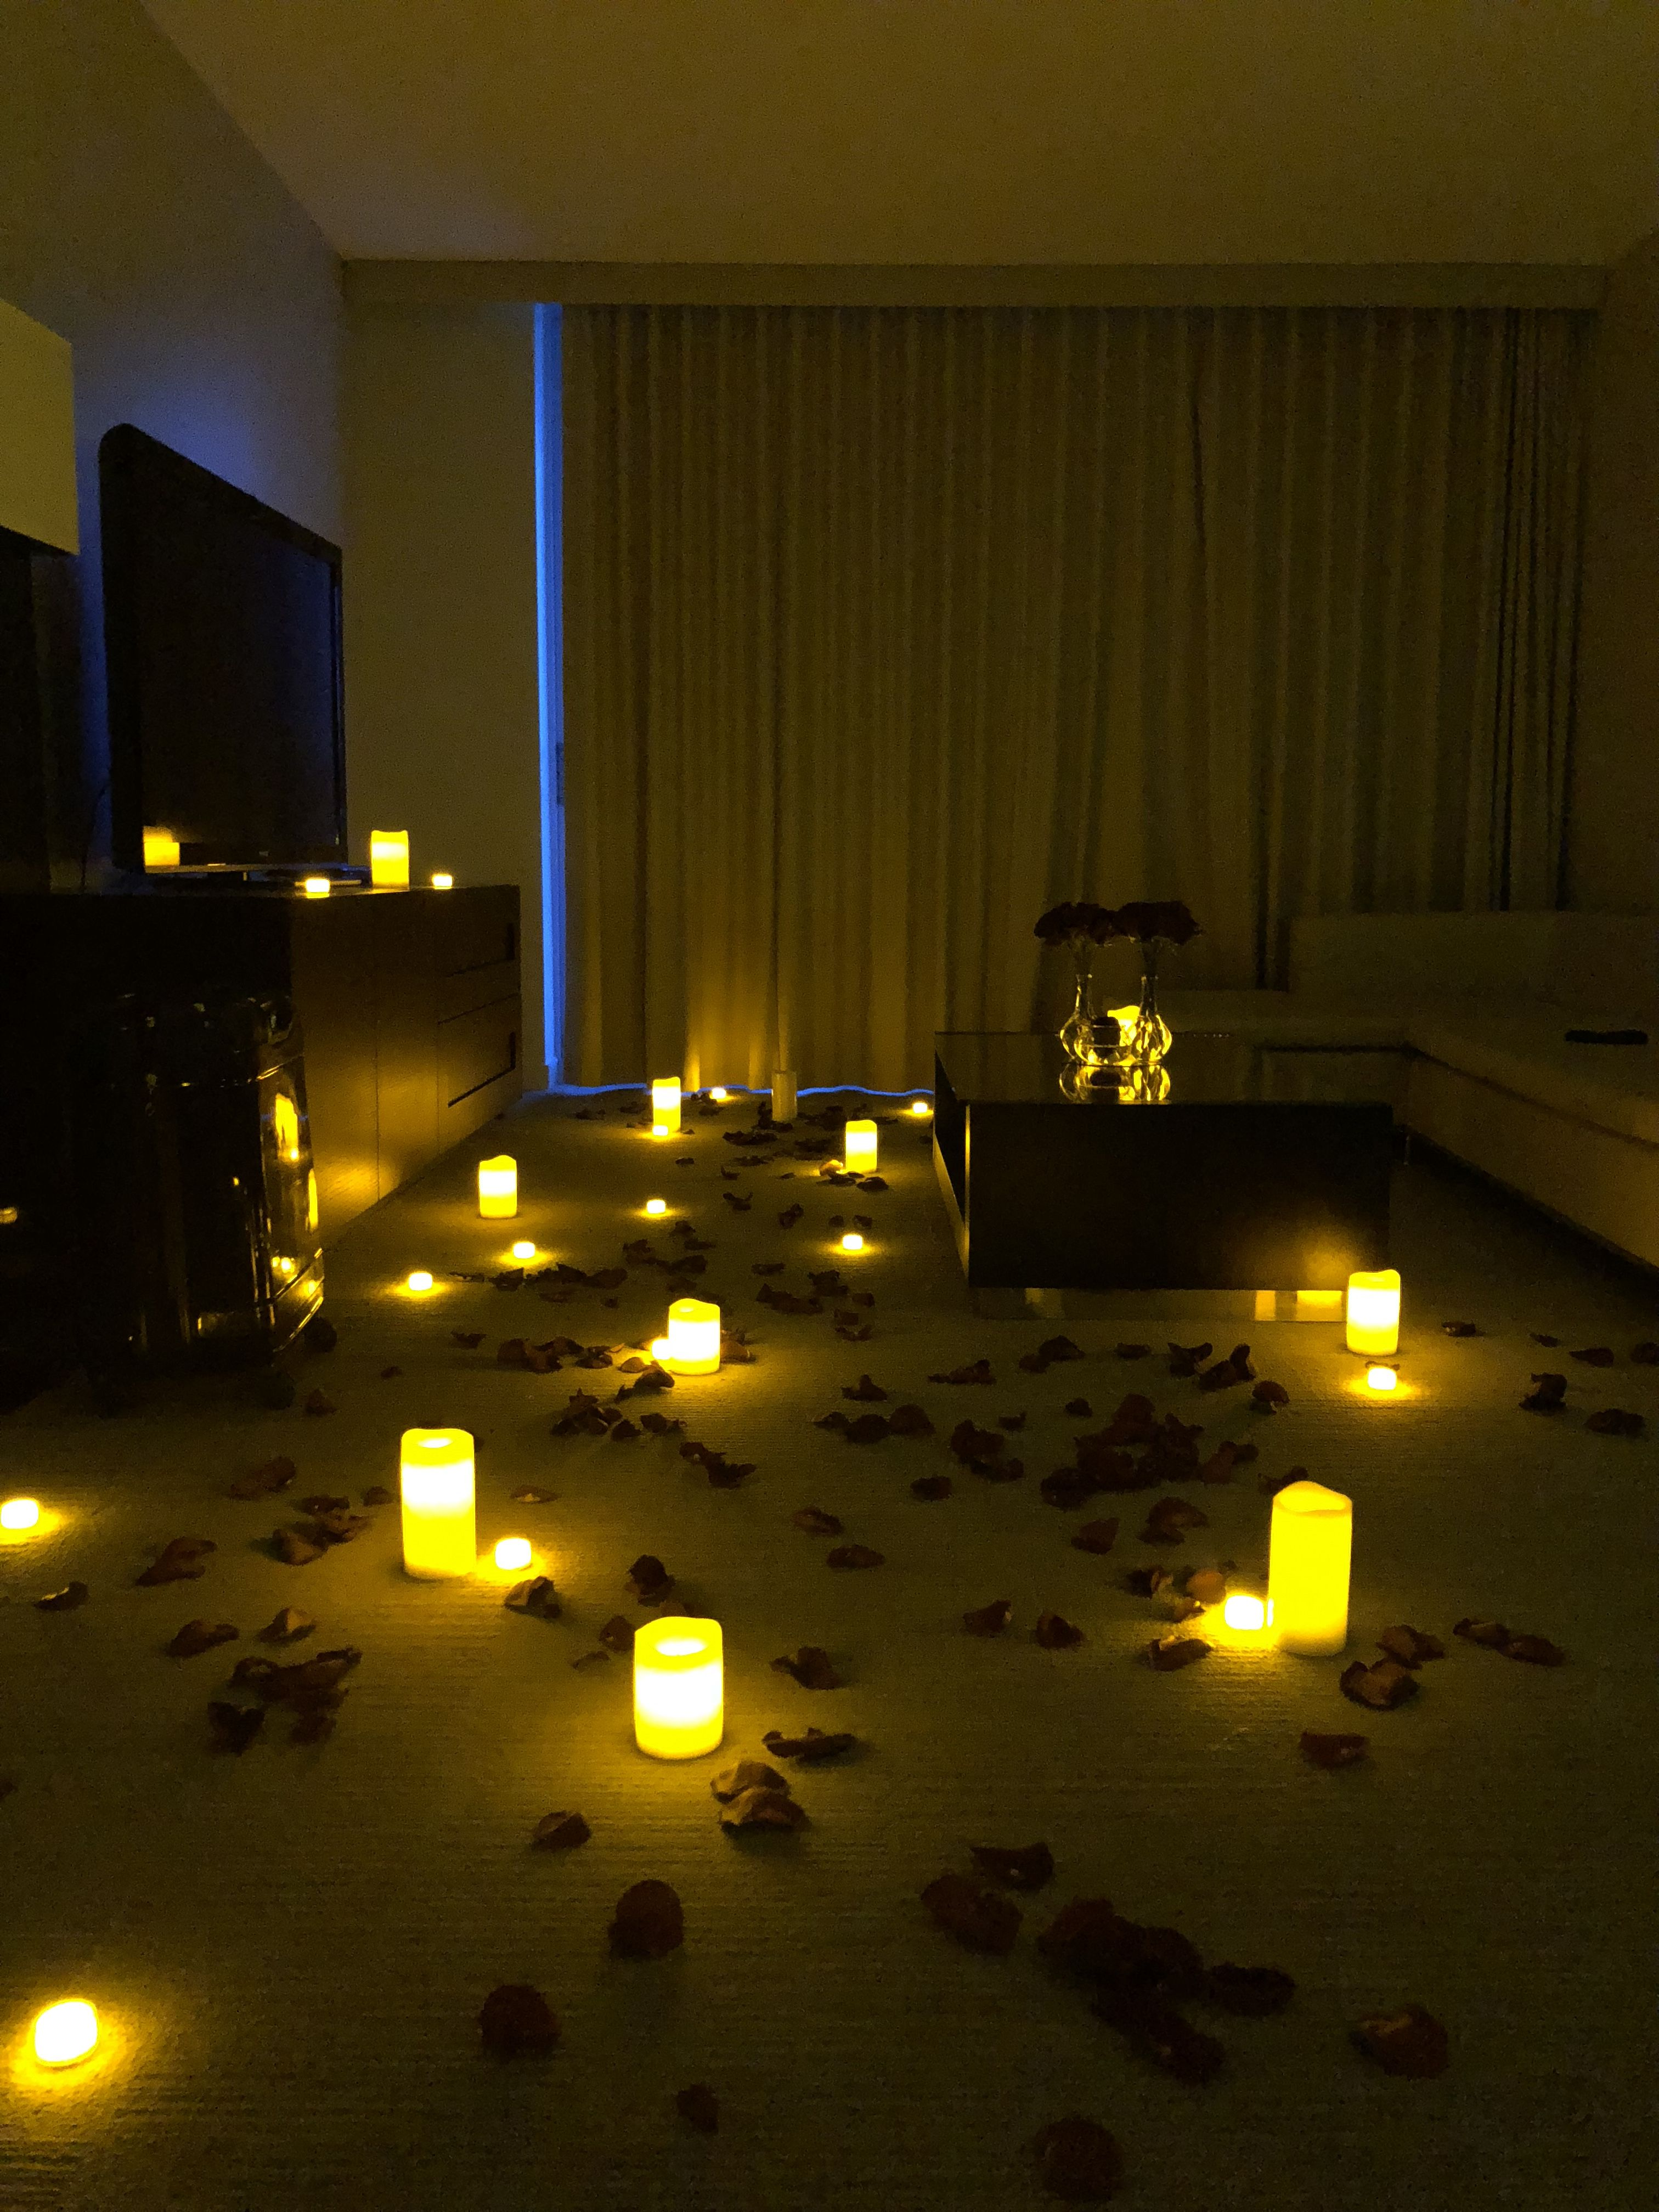 The Romantic Hotel Room Decoration With Real Rose Petals Candles And Flowers We Also Serve Cool C Romantic Hotel Rooms Romantic Room Decoration Romantic Room